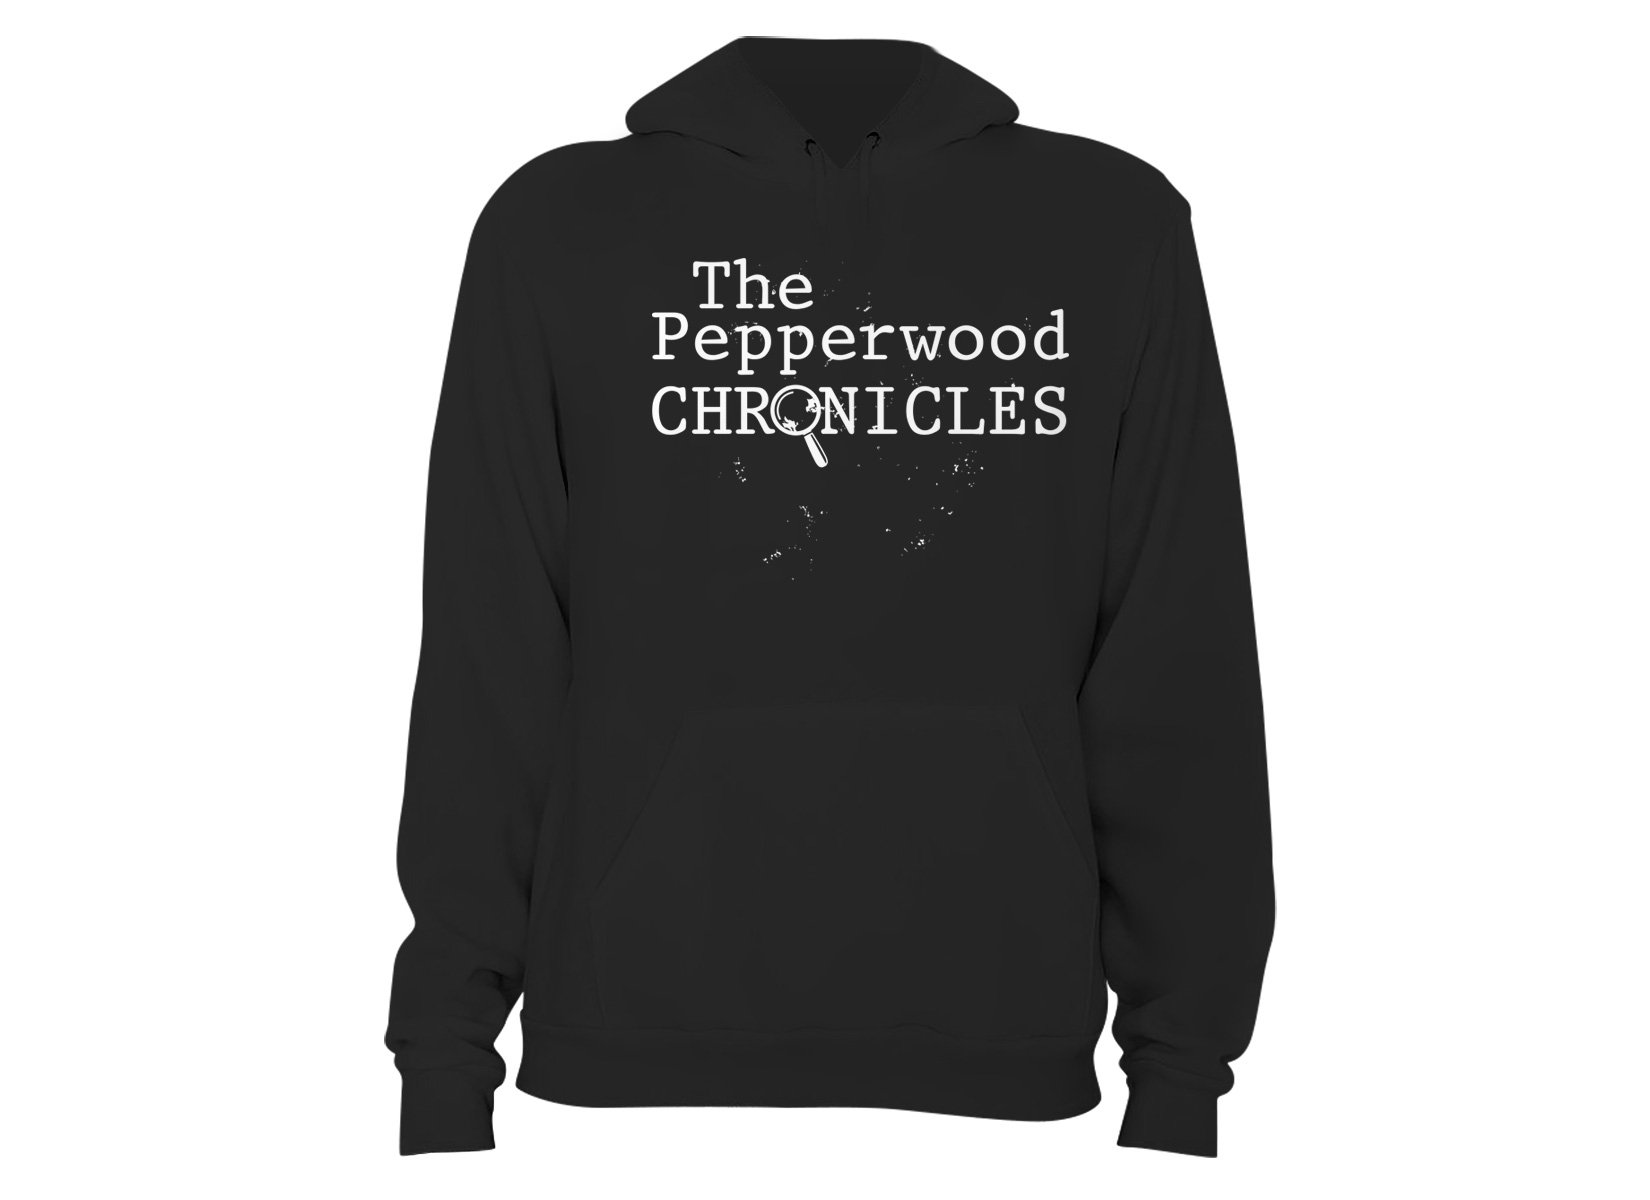 The Pepperwood Chronicles on Hoodie